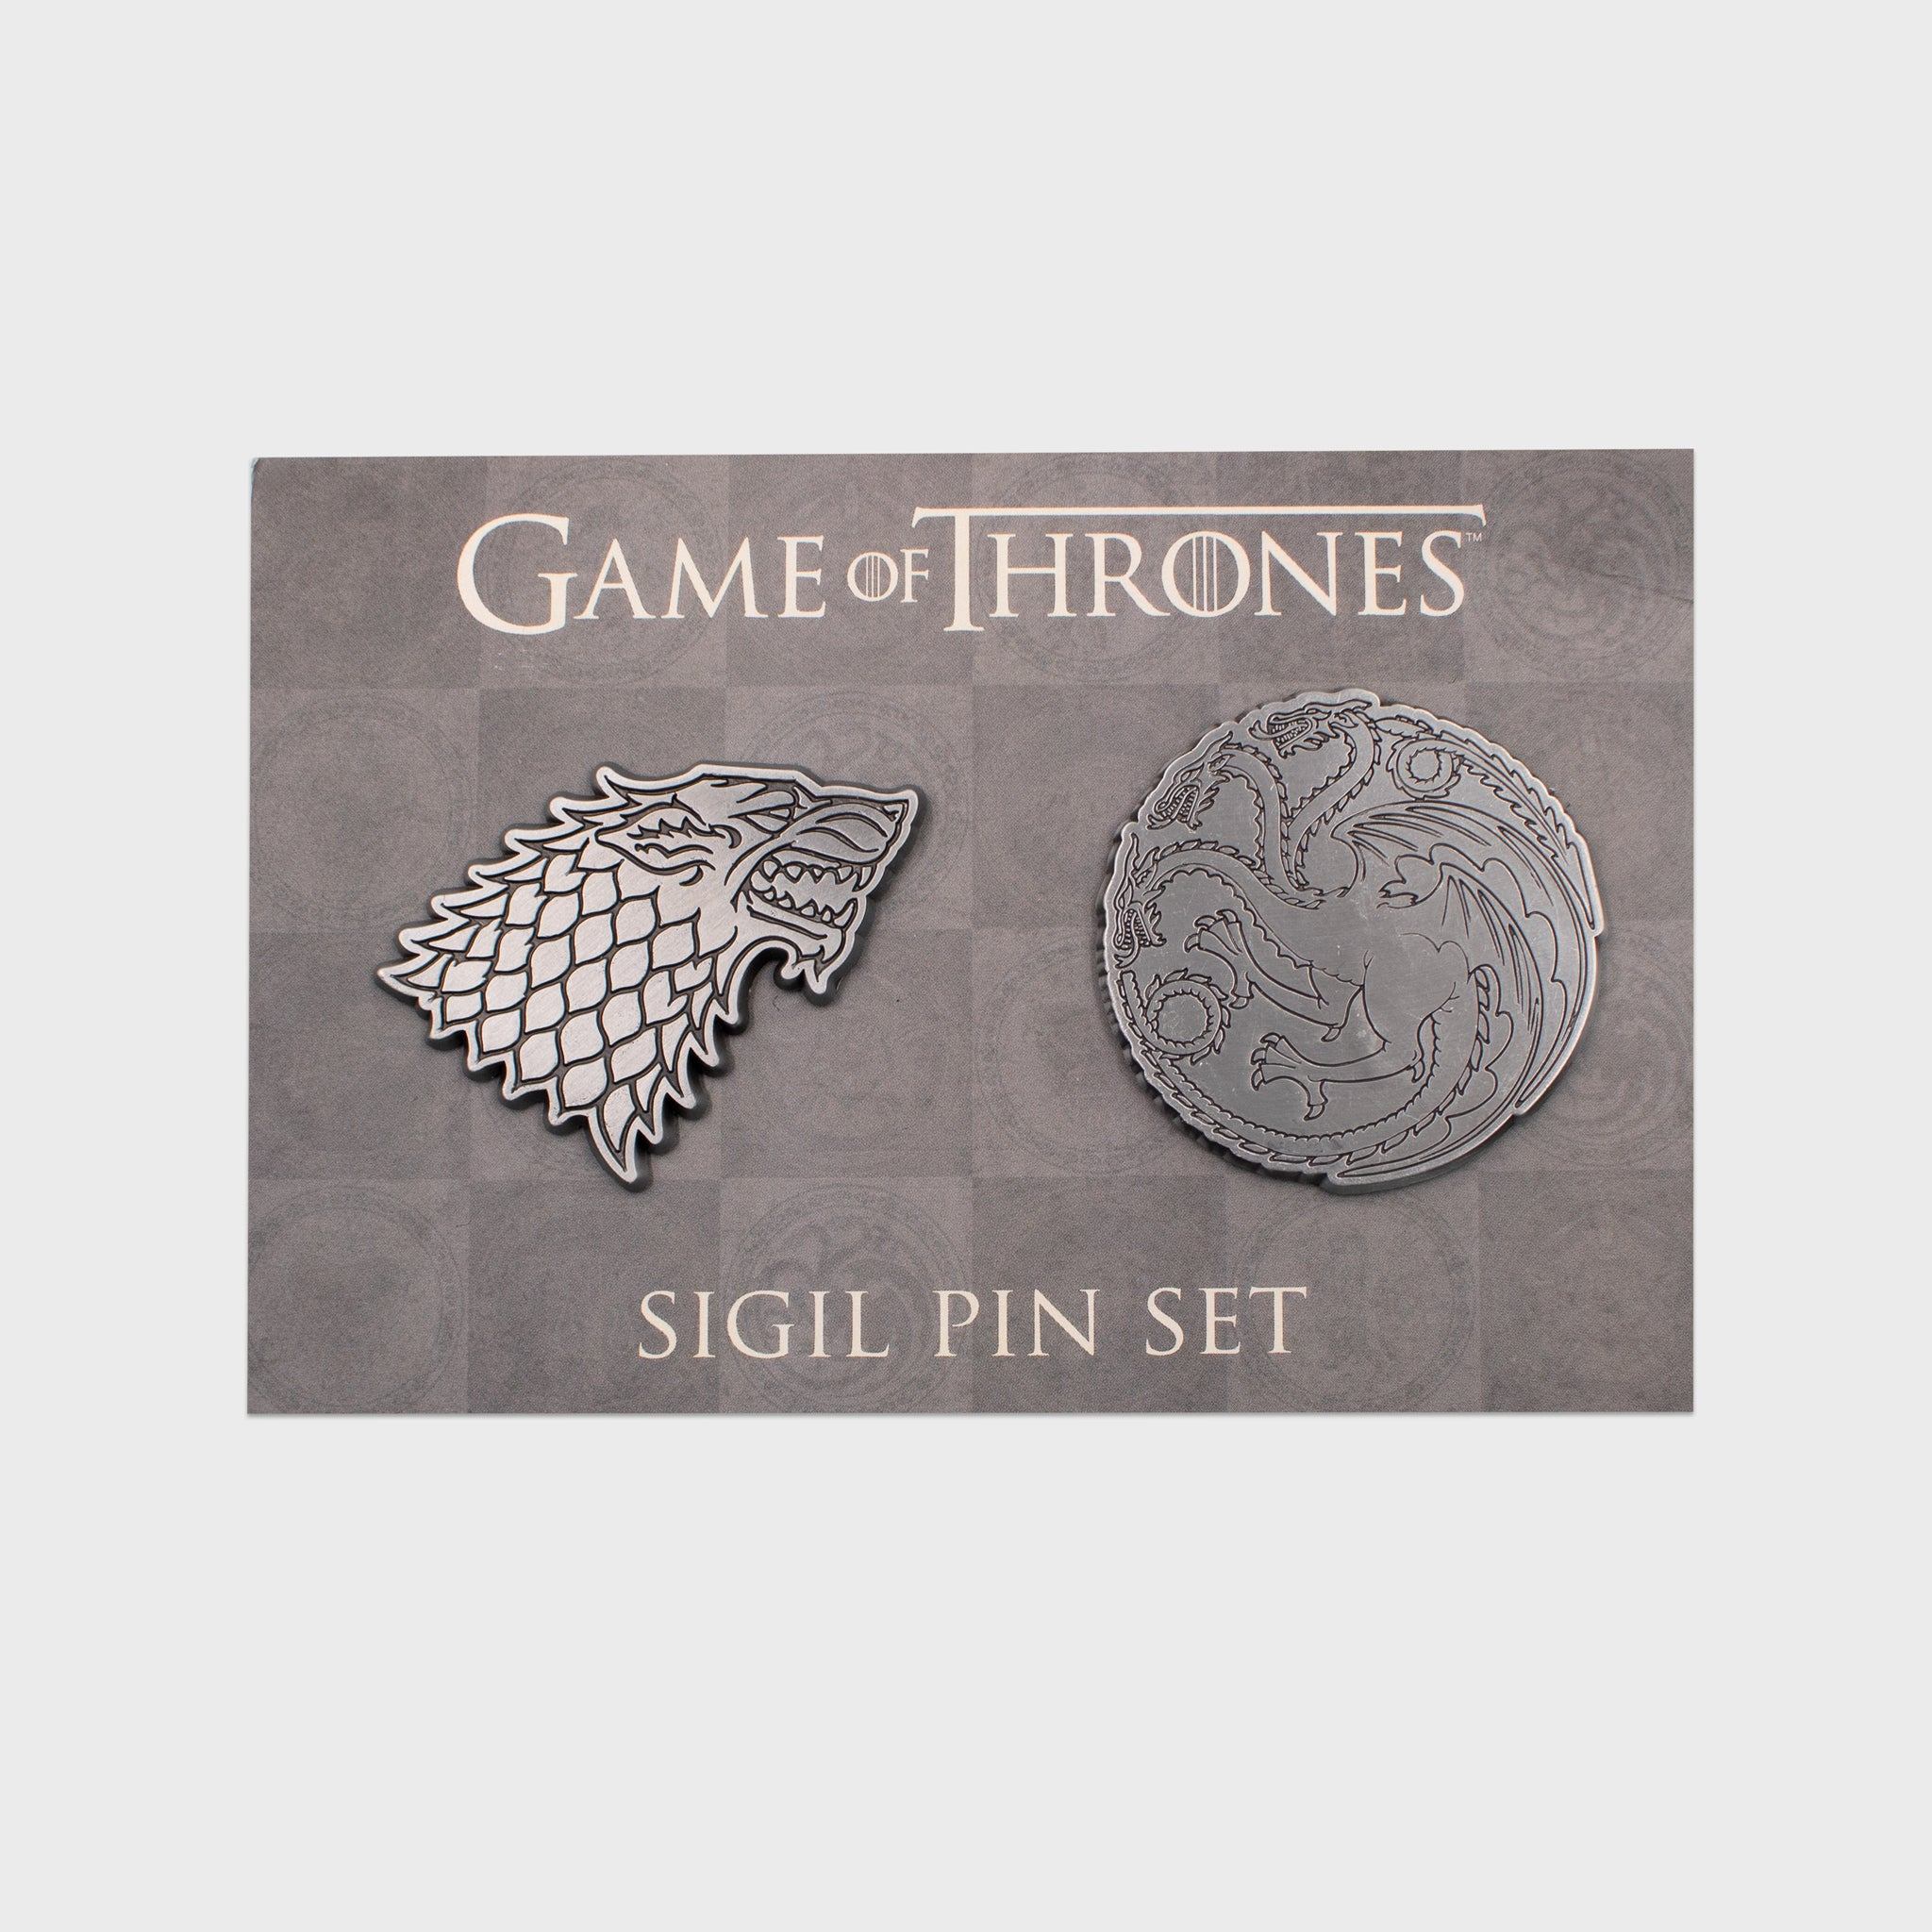 game of thrones got box stark targaryen sigil pin set enamel pin collectibles exclusives collector collection culturefly